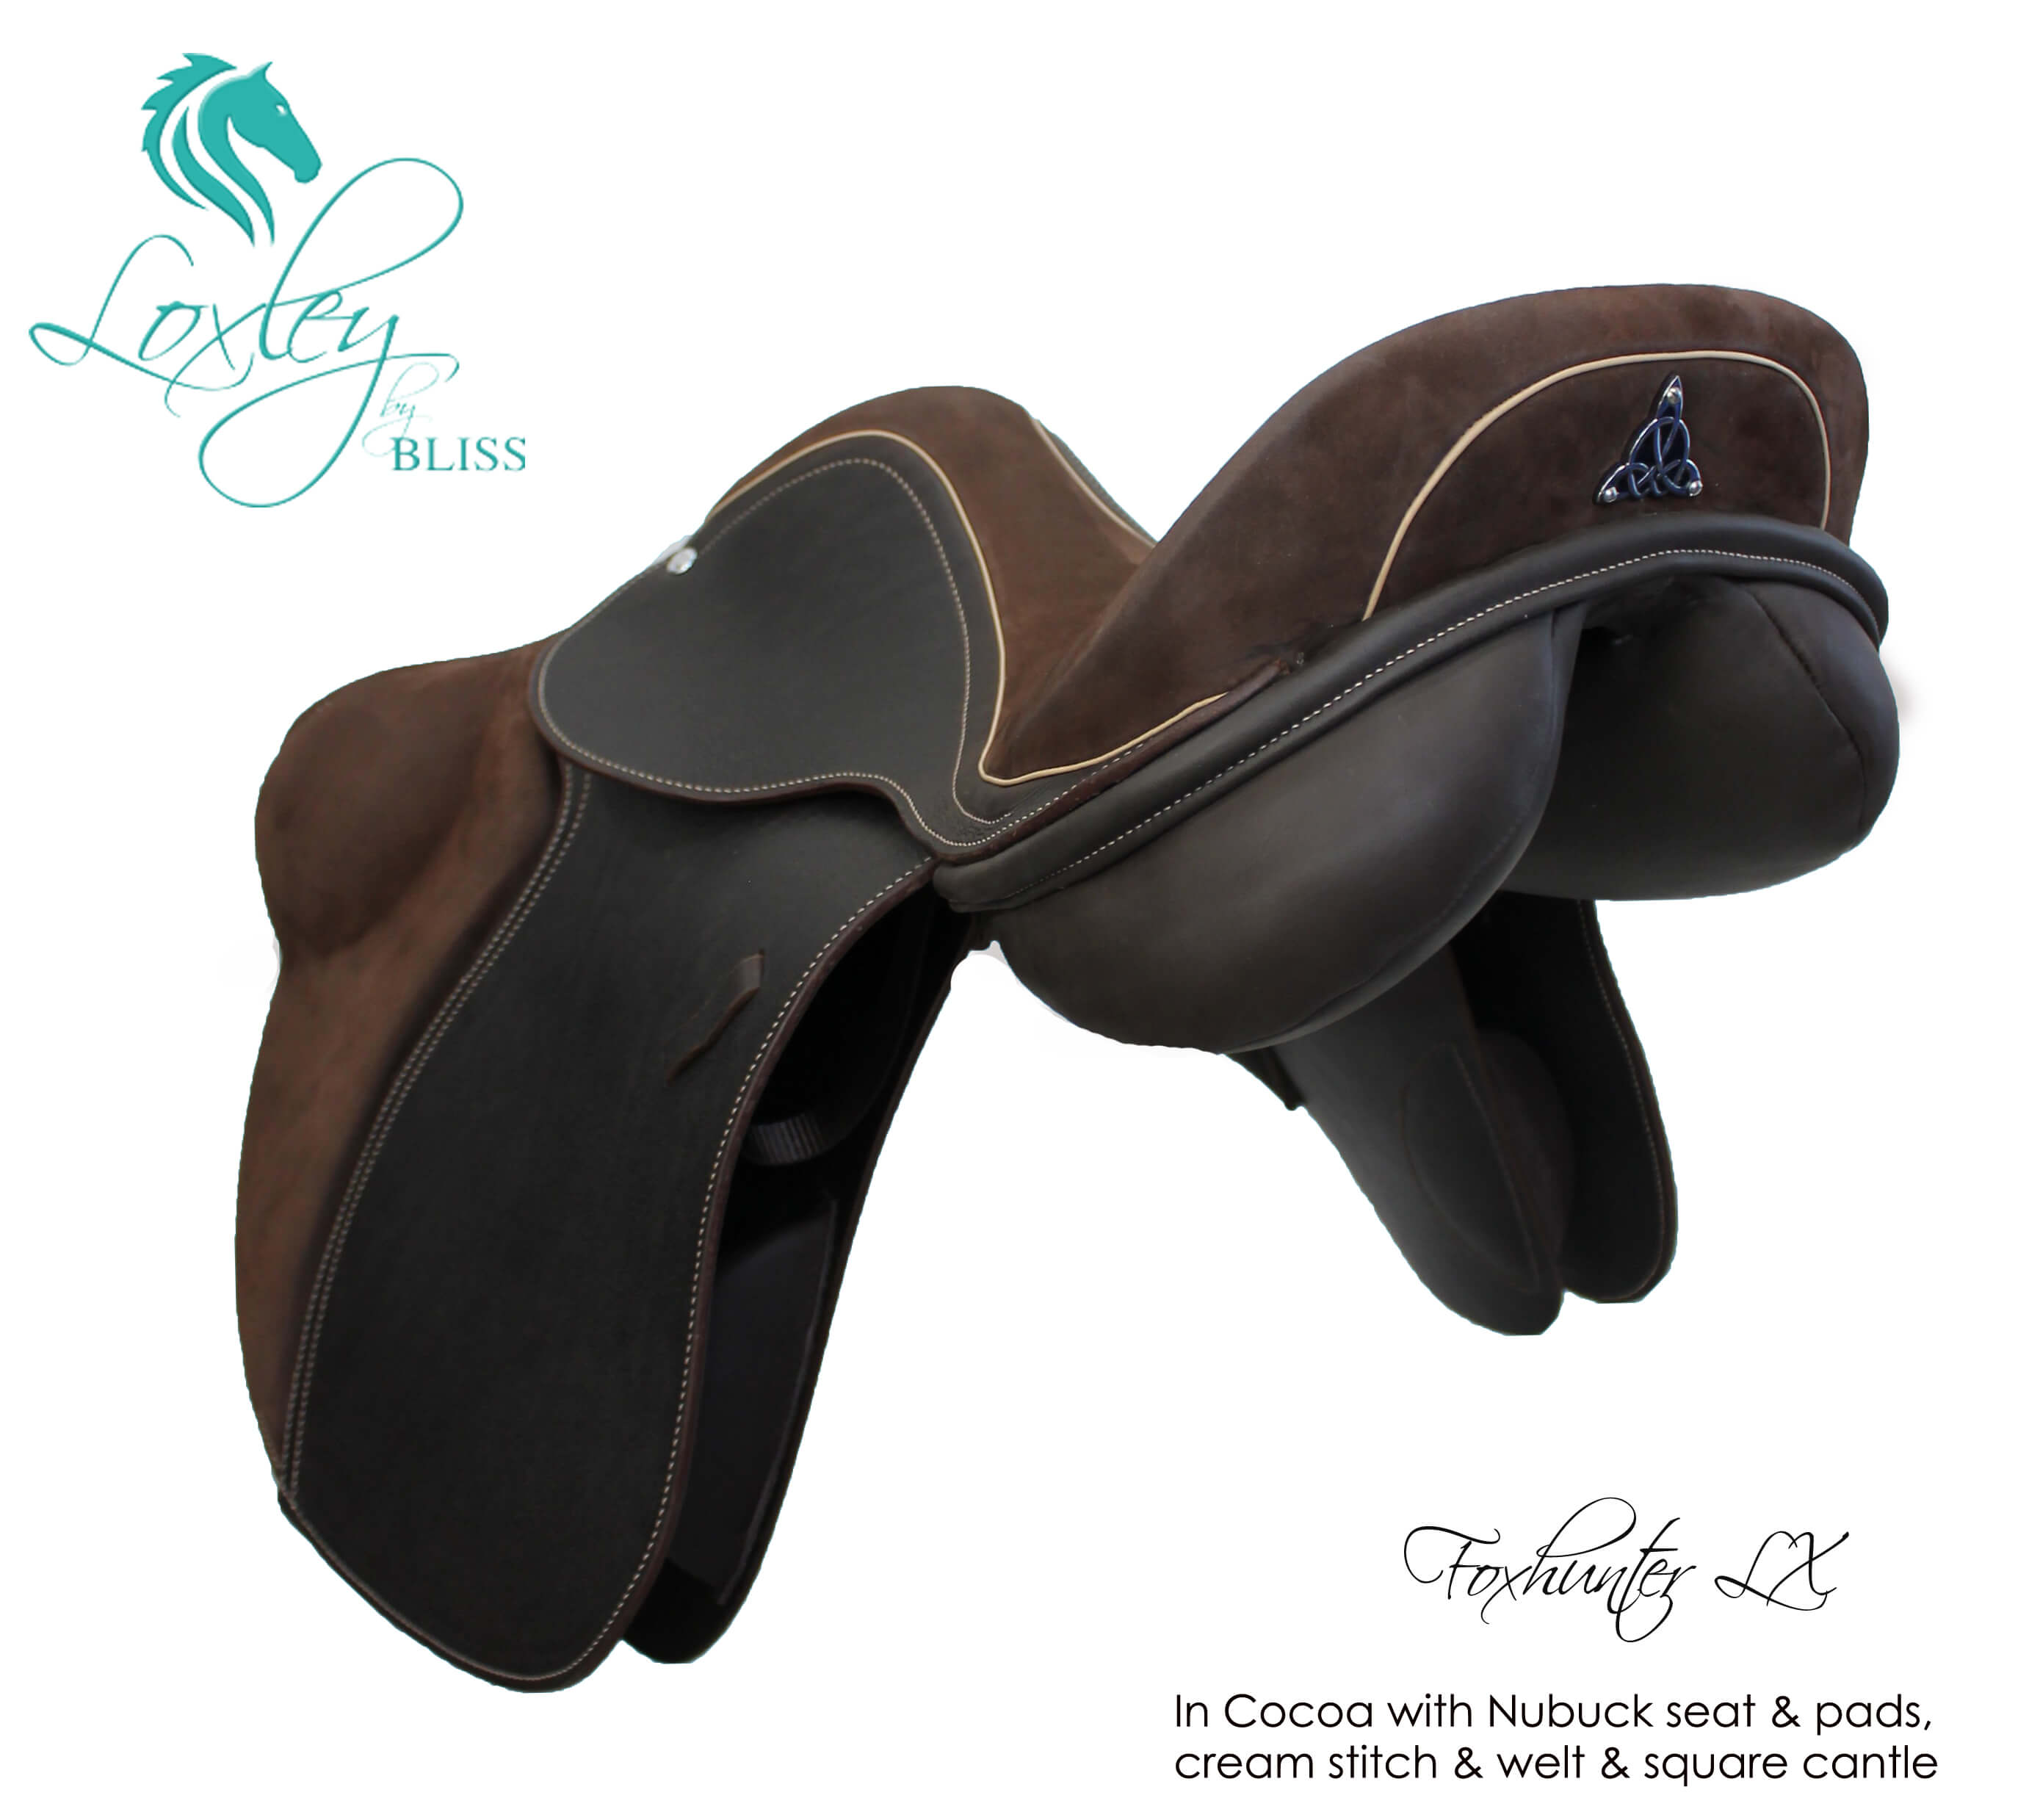 6 Loxley Foxhunter lx 18289 Loxley Saddle Image Template 34